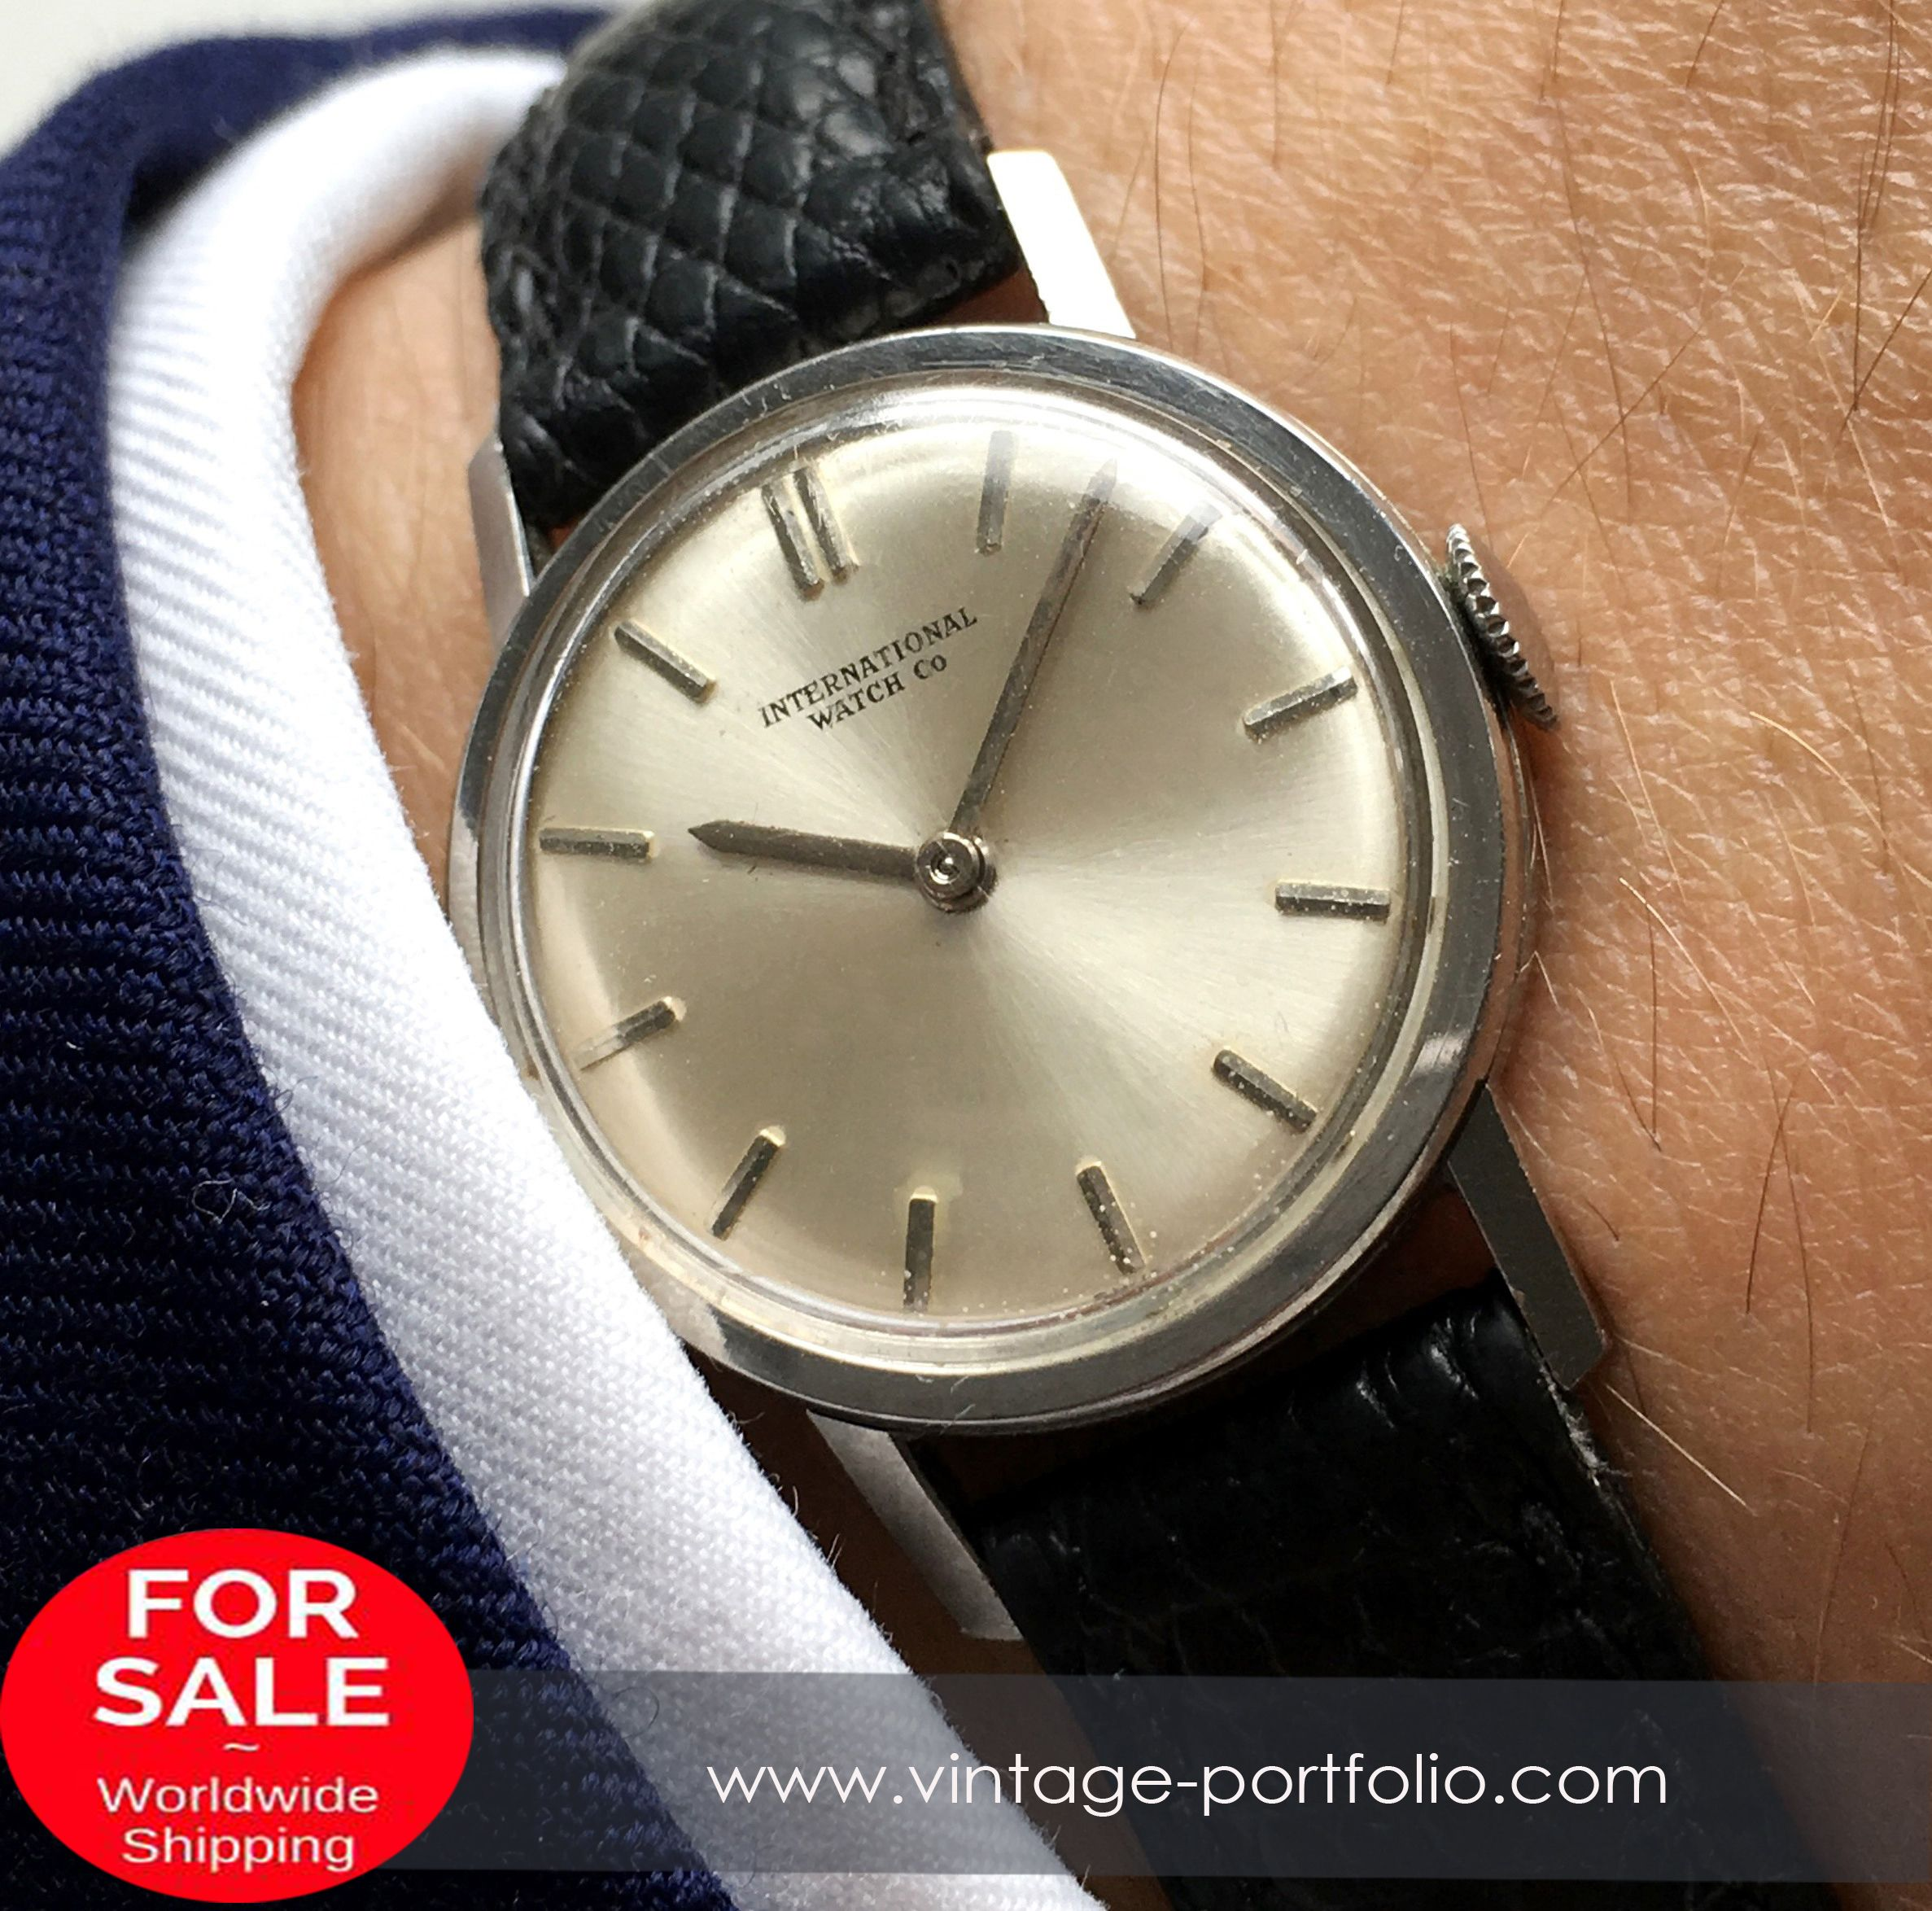 of style cool watches vintage inspired buying guide